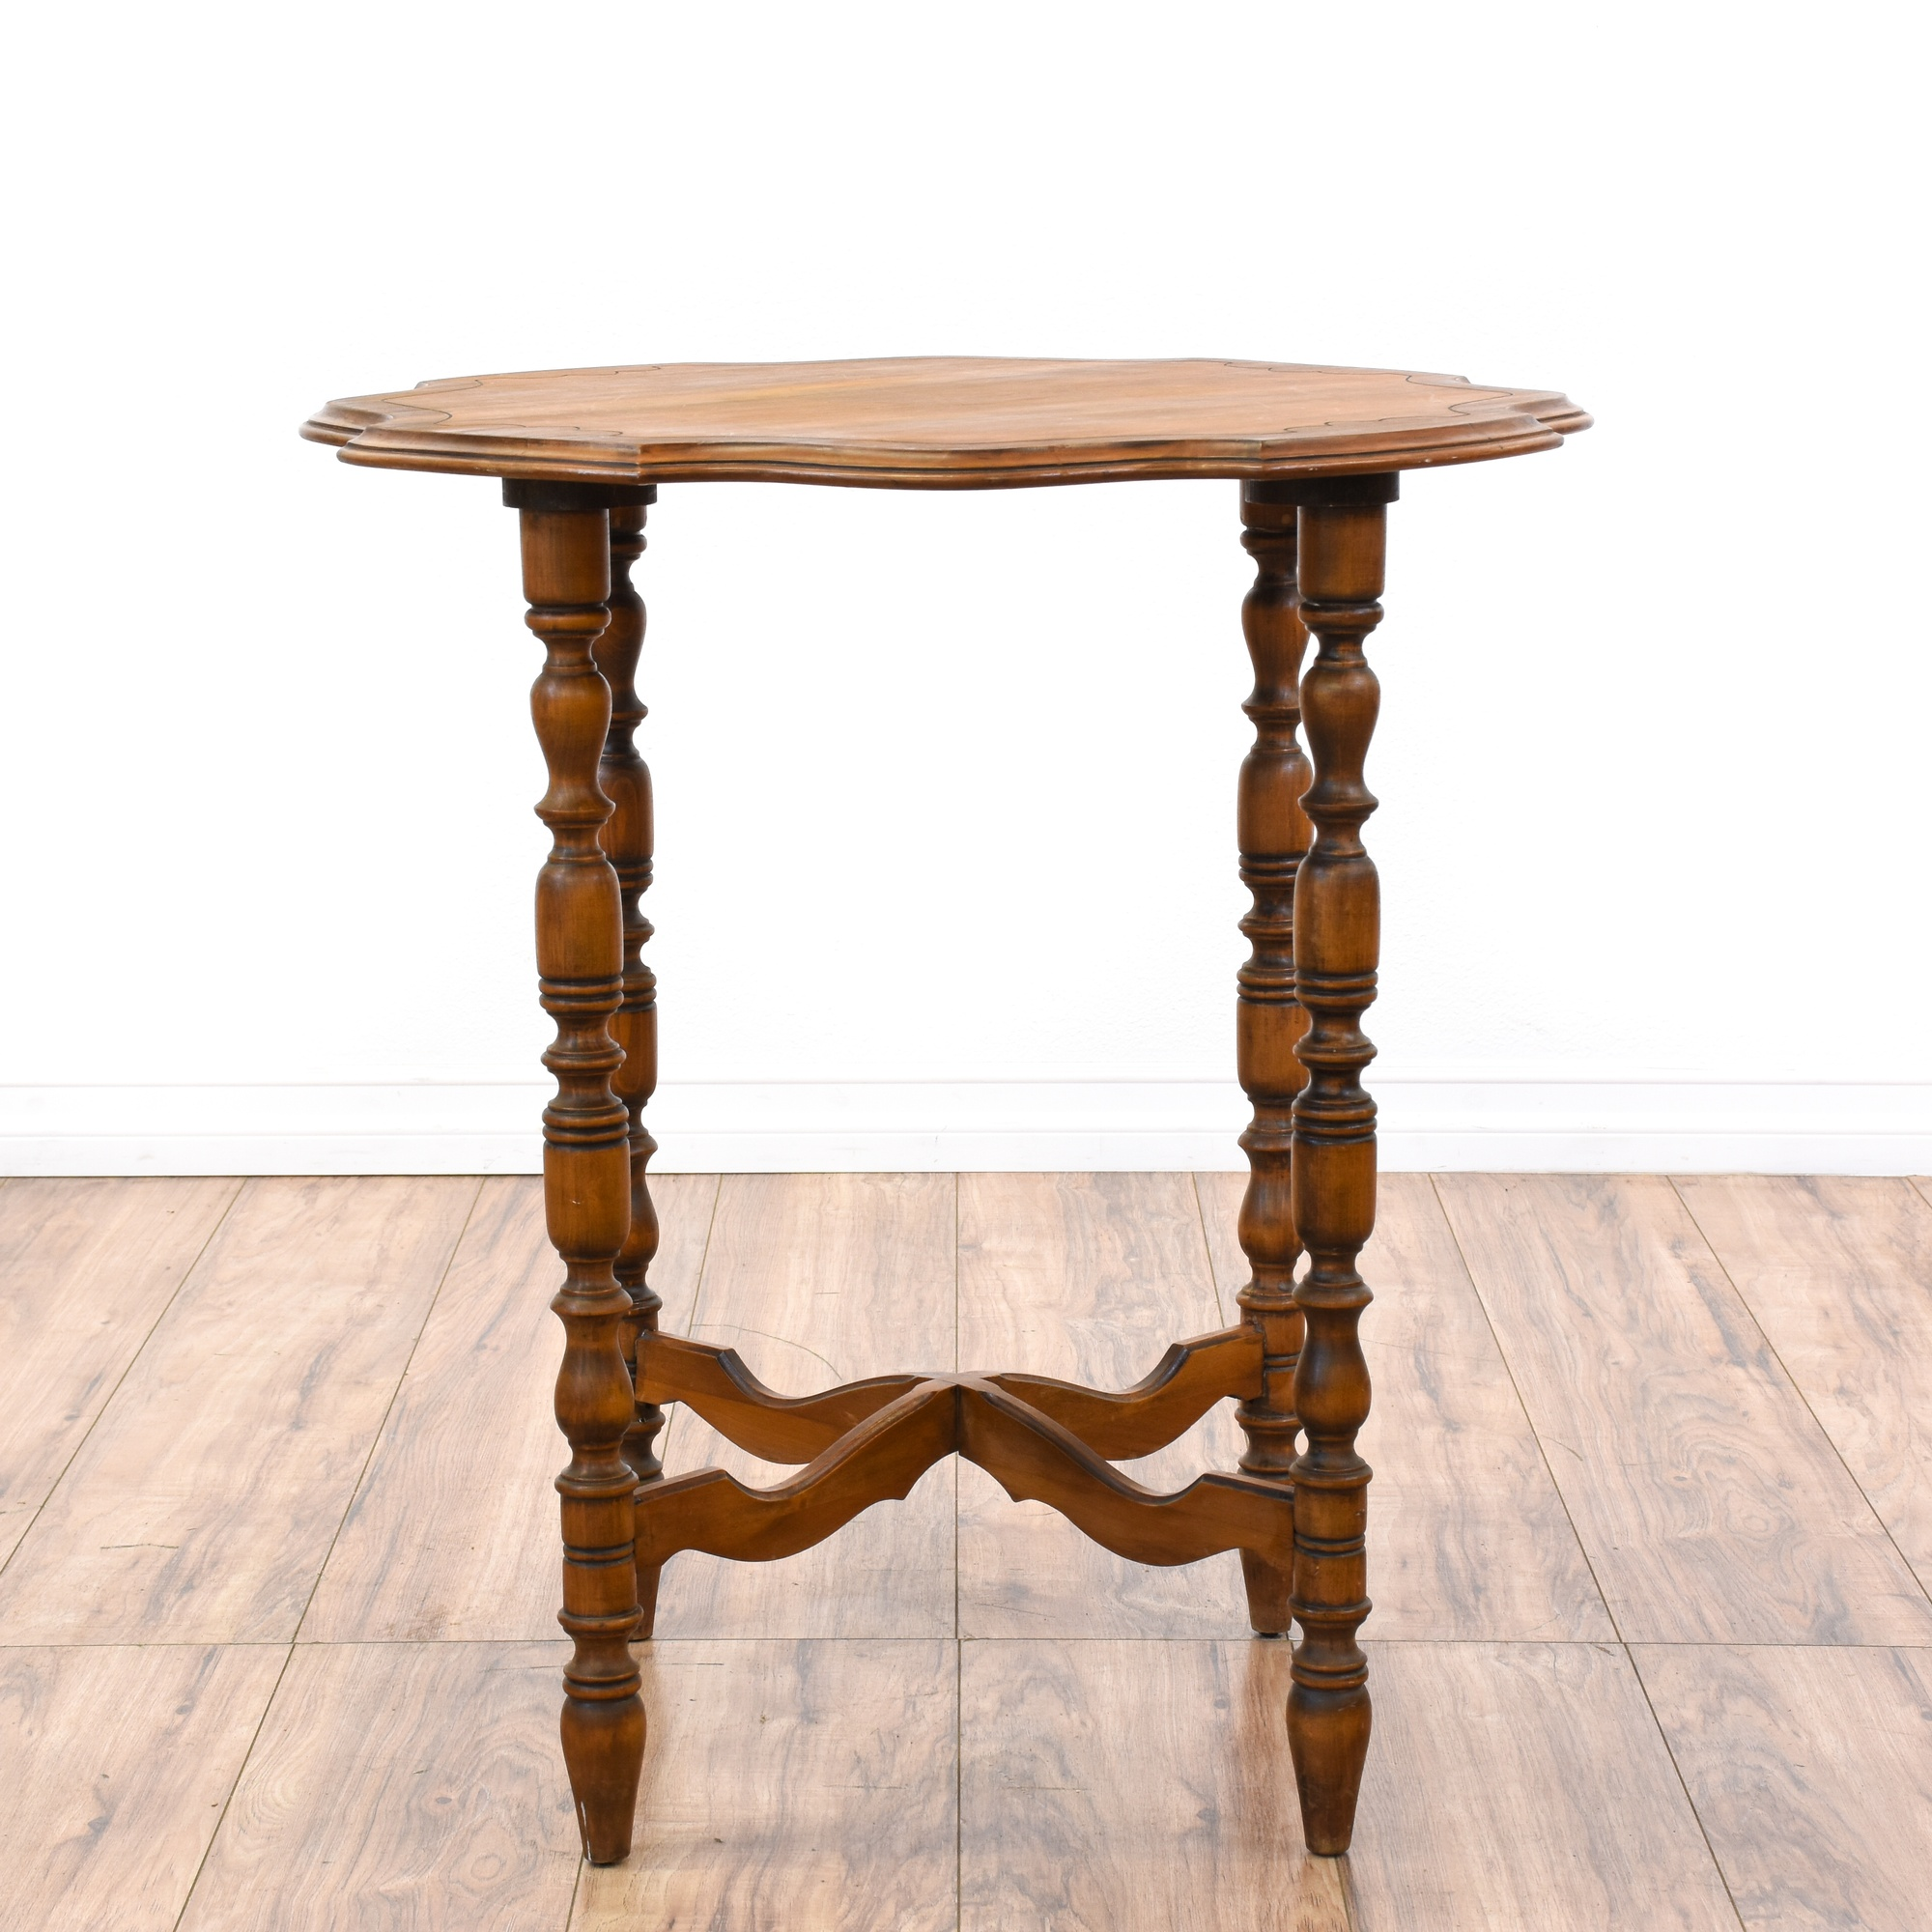 Exceptional Spindle Leg Table #19 - Loveseat Vintage